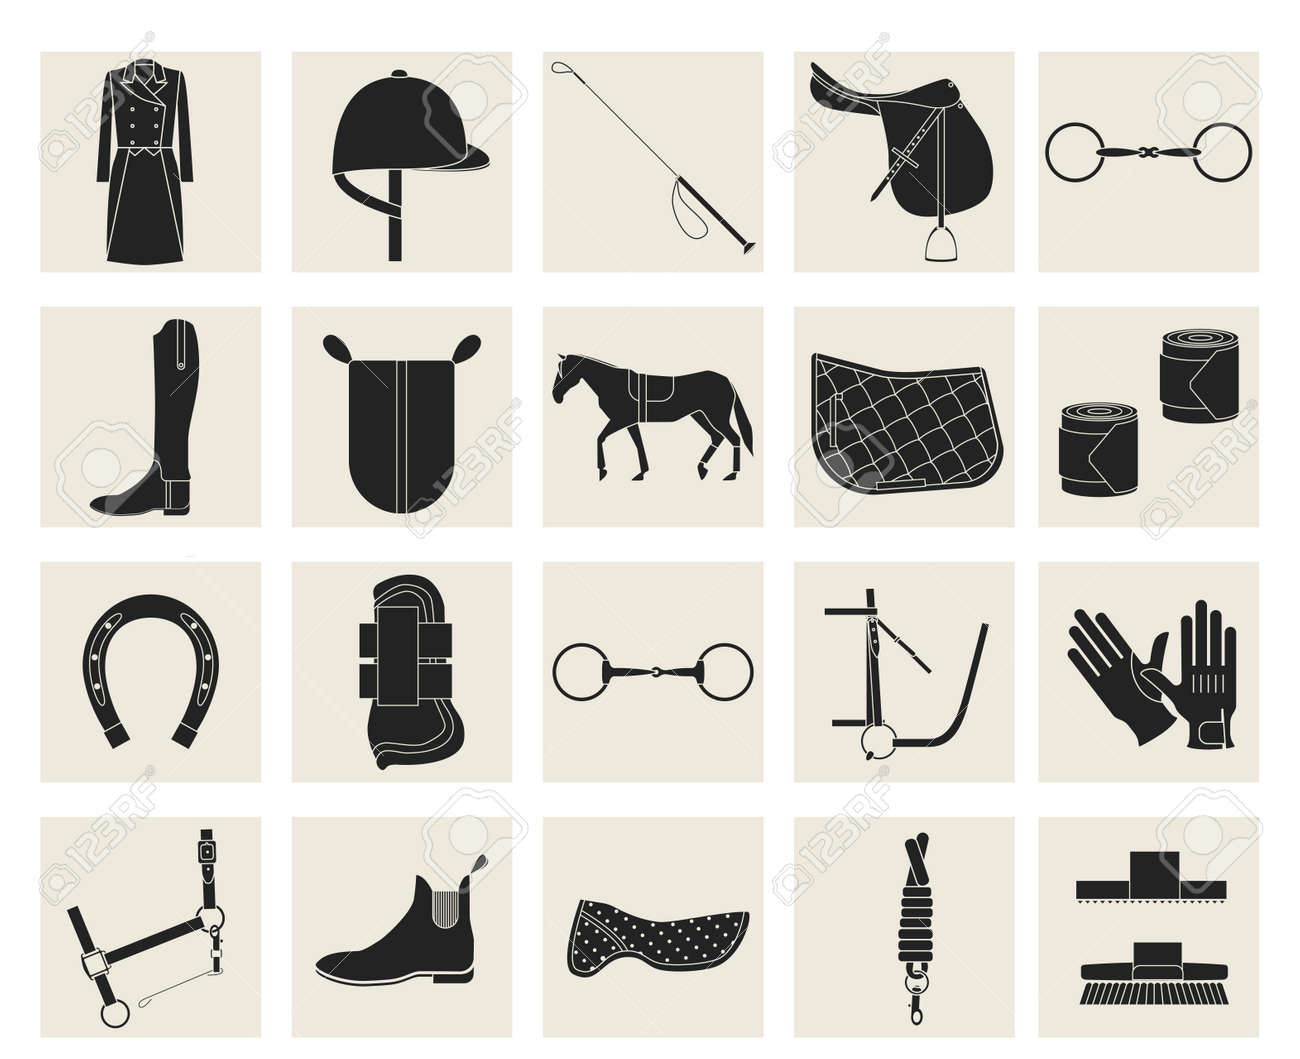 Collection Of Horseback Riding Gear And Riding Attire Royalty Free Cliparts Vectors And Stock Illustration Image 57921714